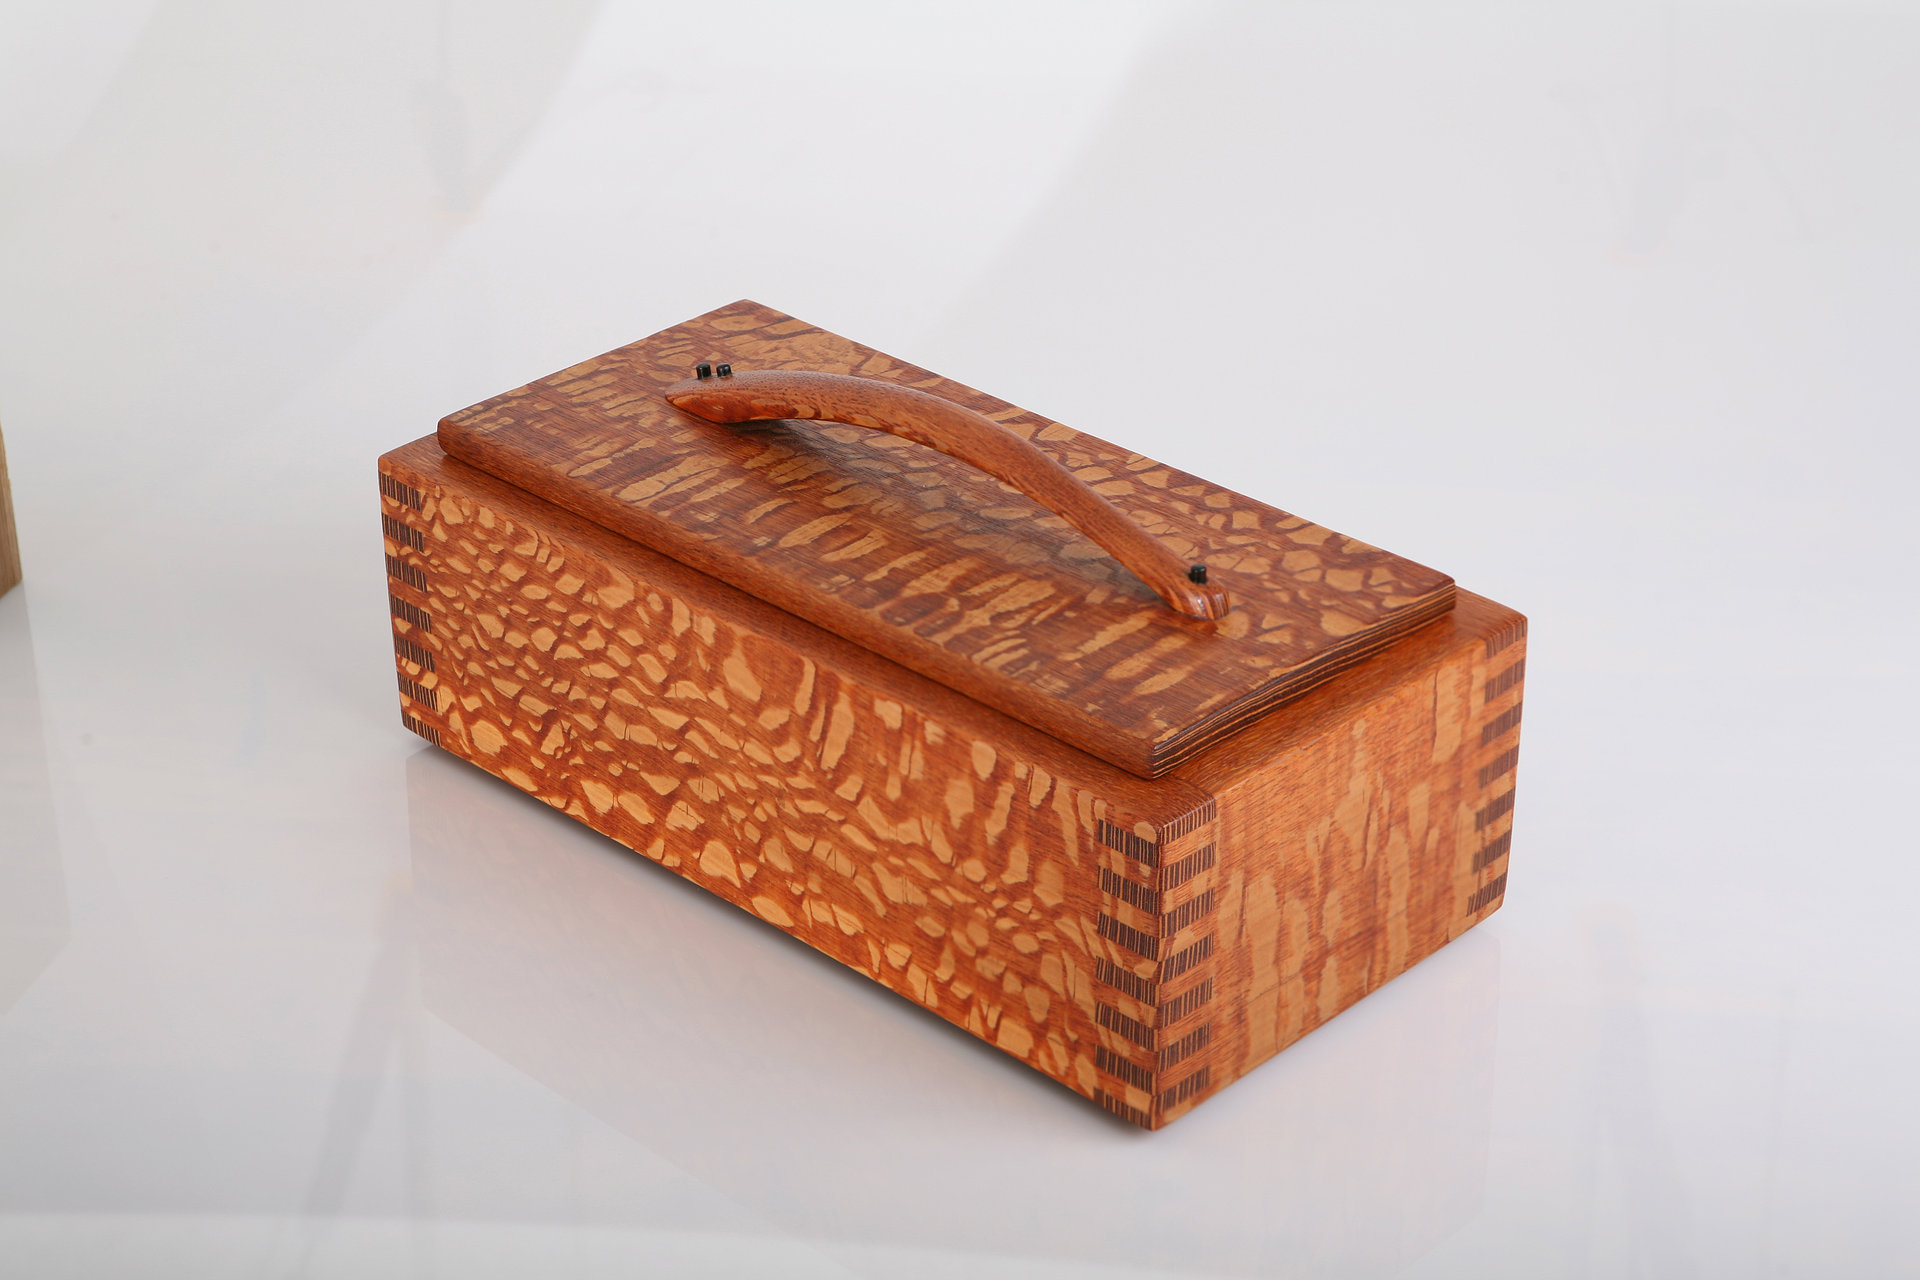 Lacewood jewelry / keepsake box